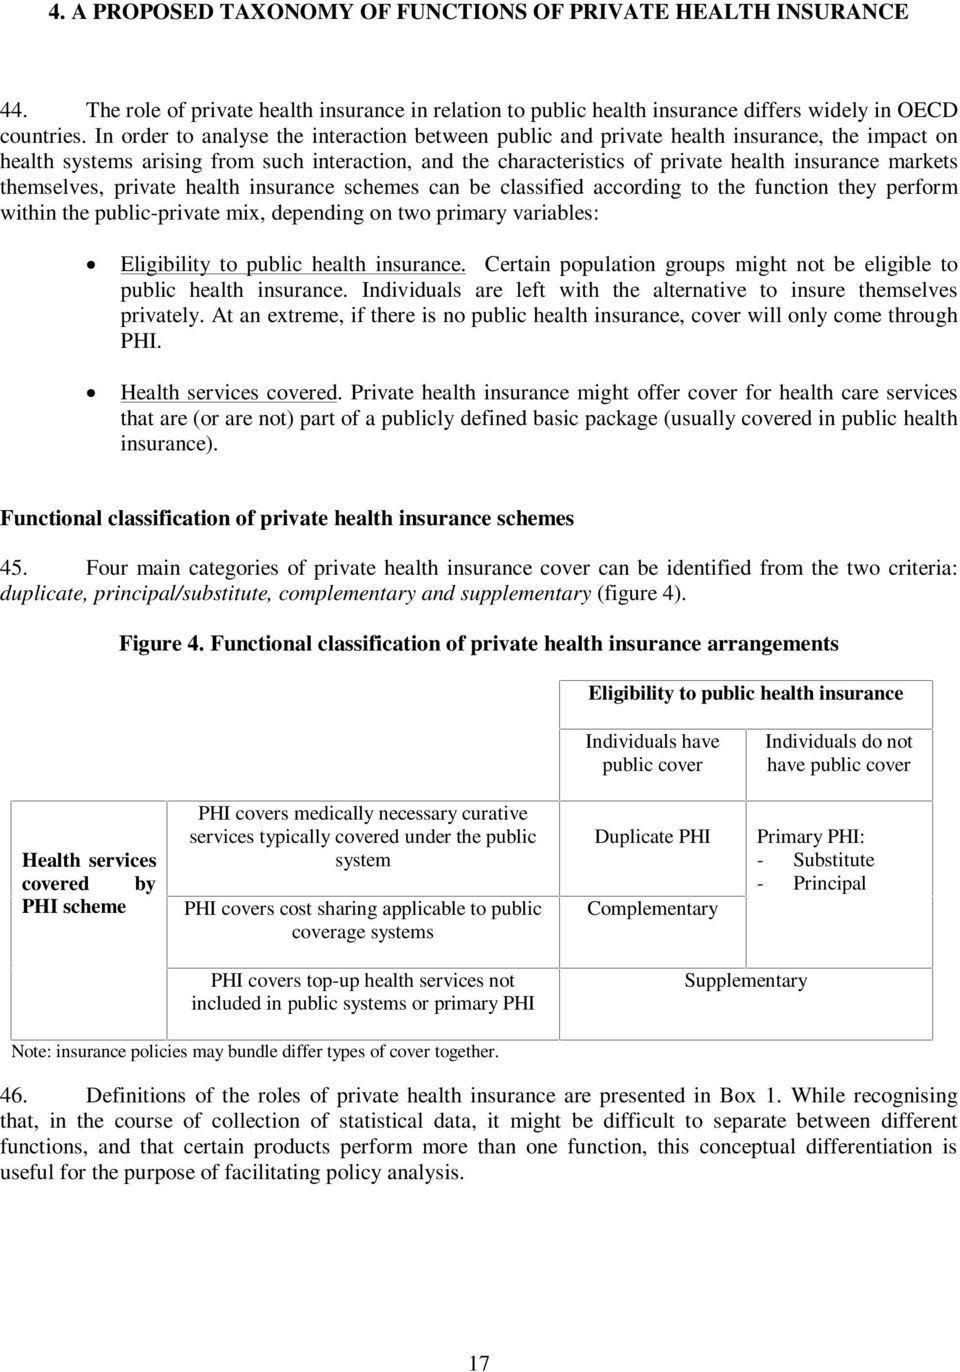 markets themselves, private health insurance schemes can be classified according to the function they perform within the public-private mi, depending on two primary variables: Eligibility to public